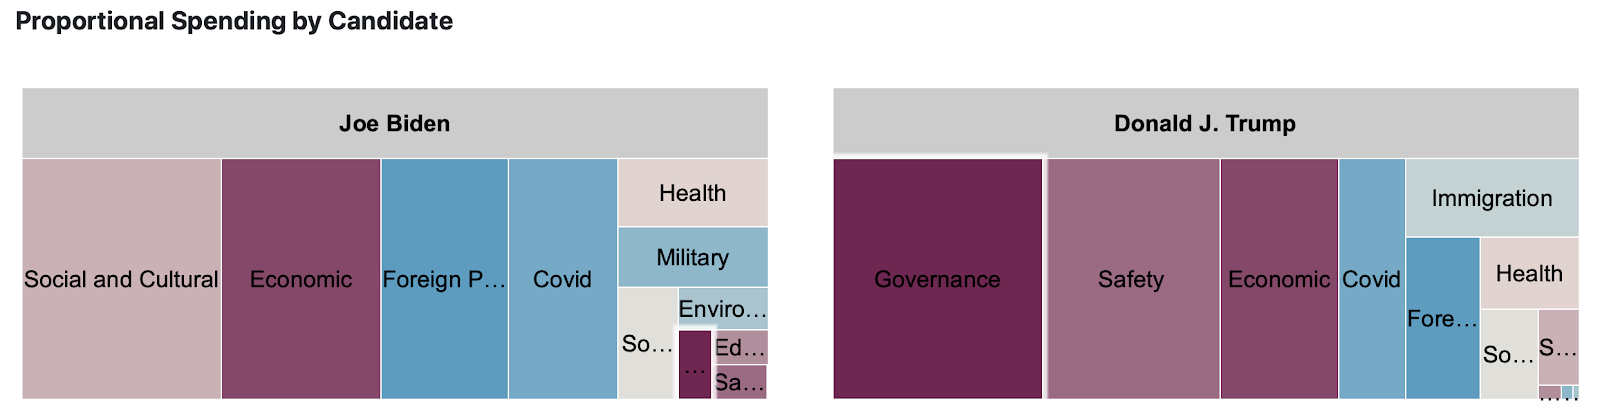 Tree maps showing proportional spending by message topic for Trump and Biden from 6/1 to 11/1/20. Biden's map generally shows a focus on social and cultural, economic, foreign policy, and COVID (in that order). Trump's map generally shows an emphasis on governance, safety, and economic (in that order).